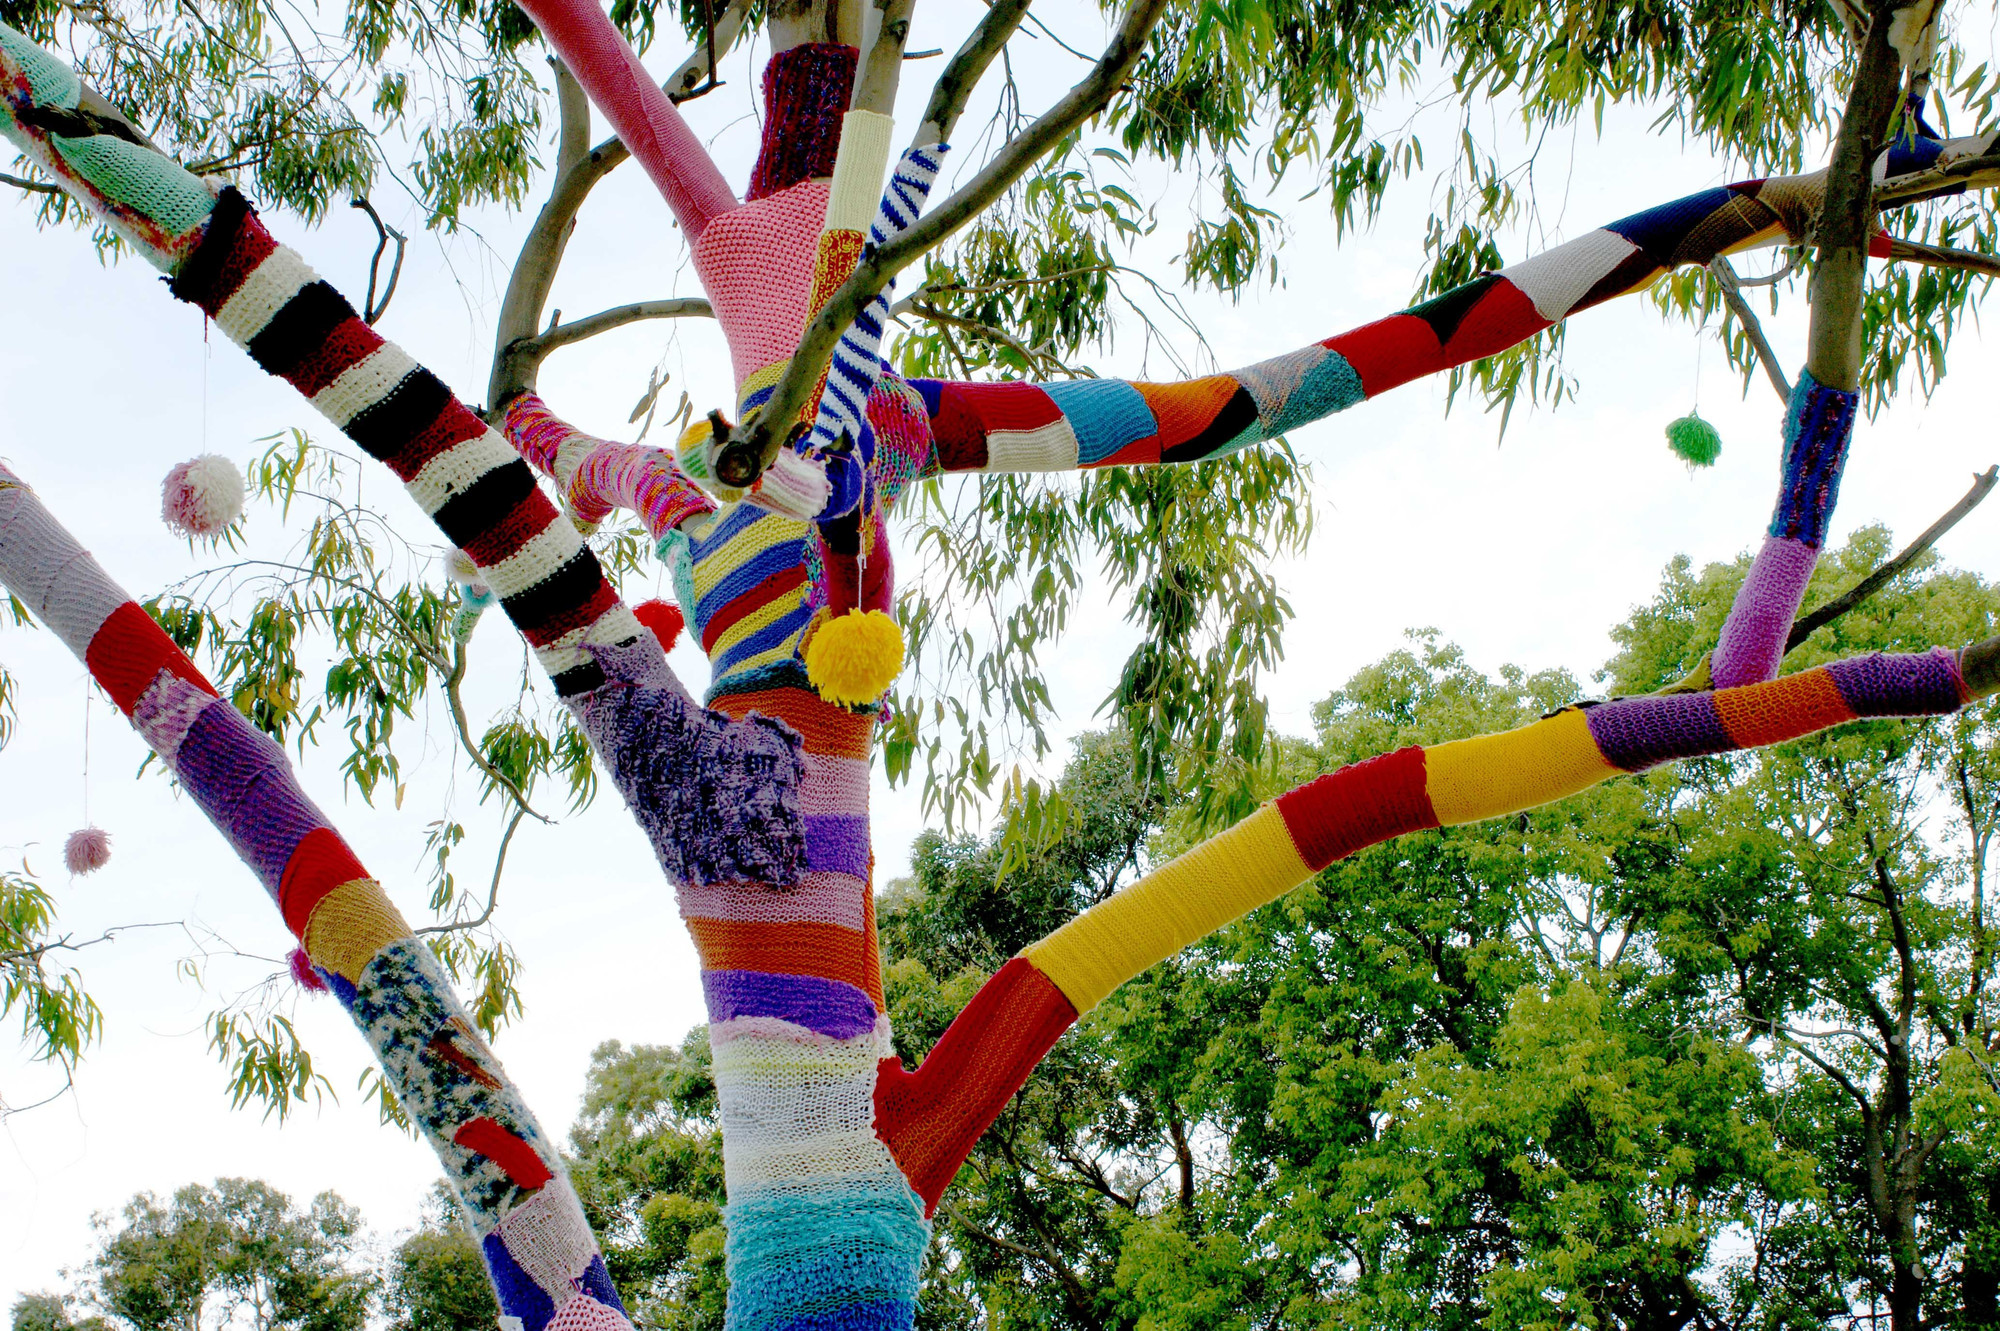 Trees, fixtures and even the columns of Patriot Hall will be covered in yarn through the Sumter Yarn Explosion.